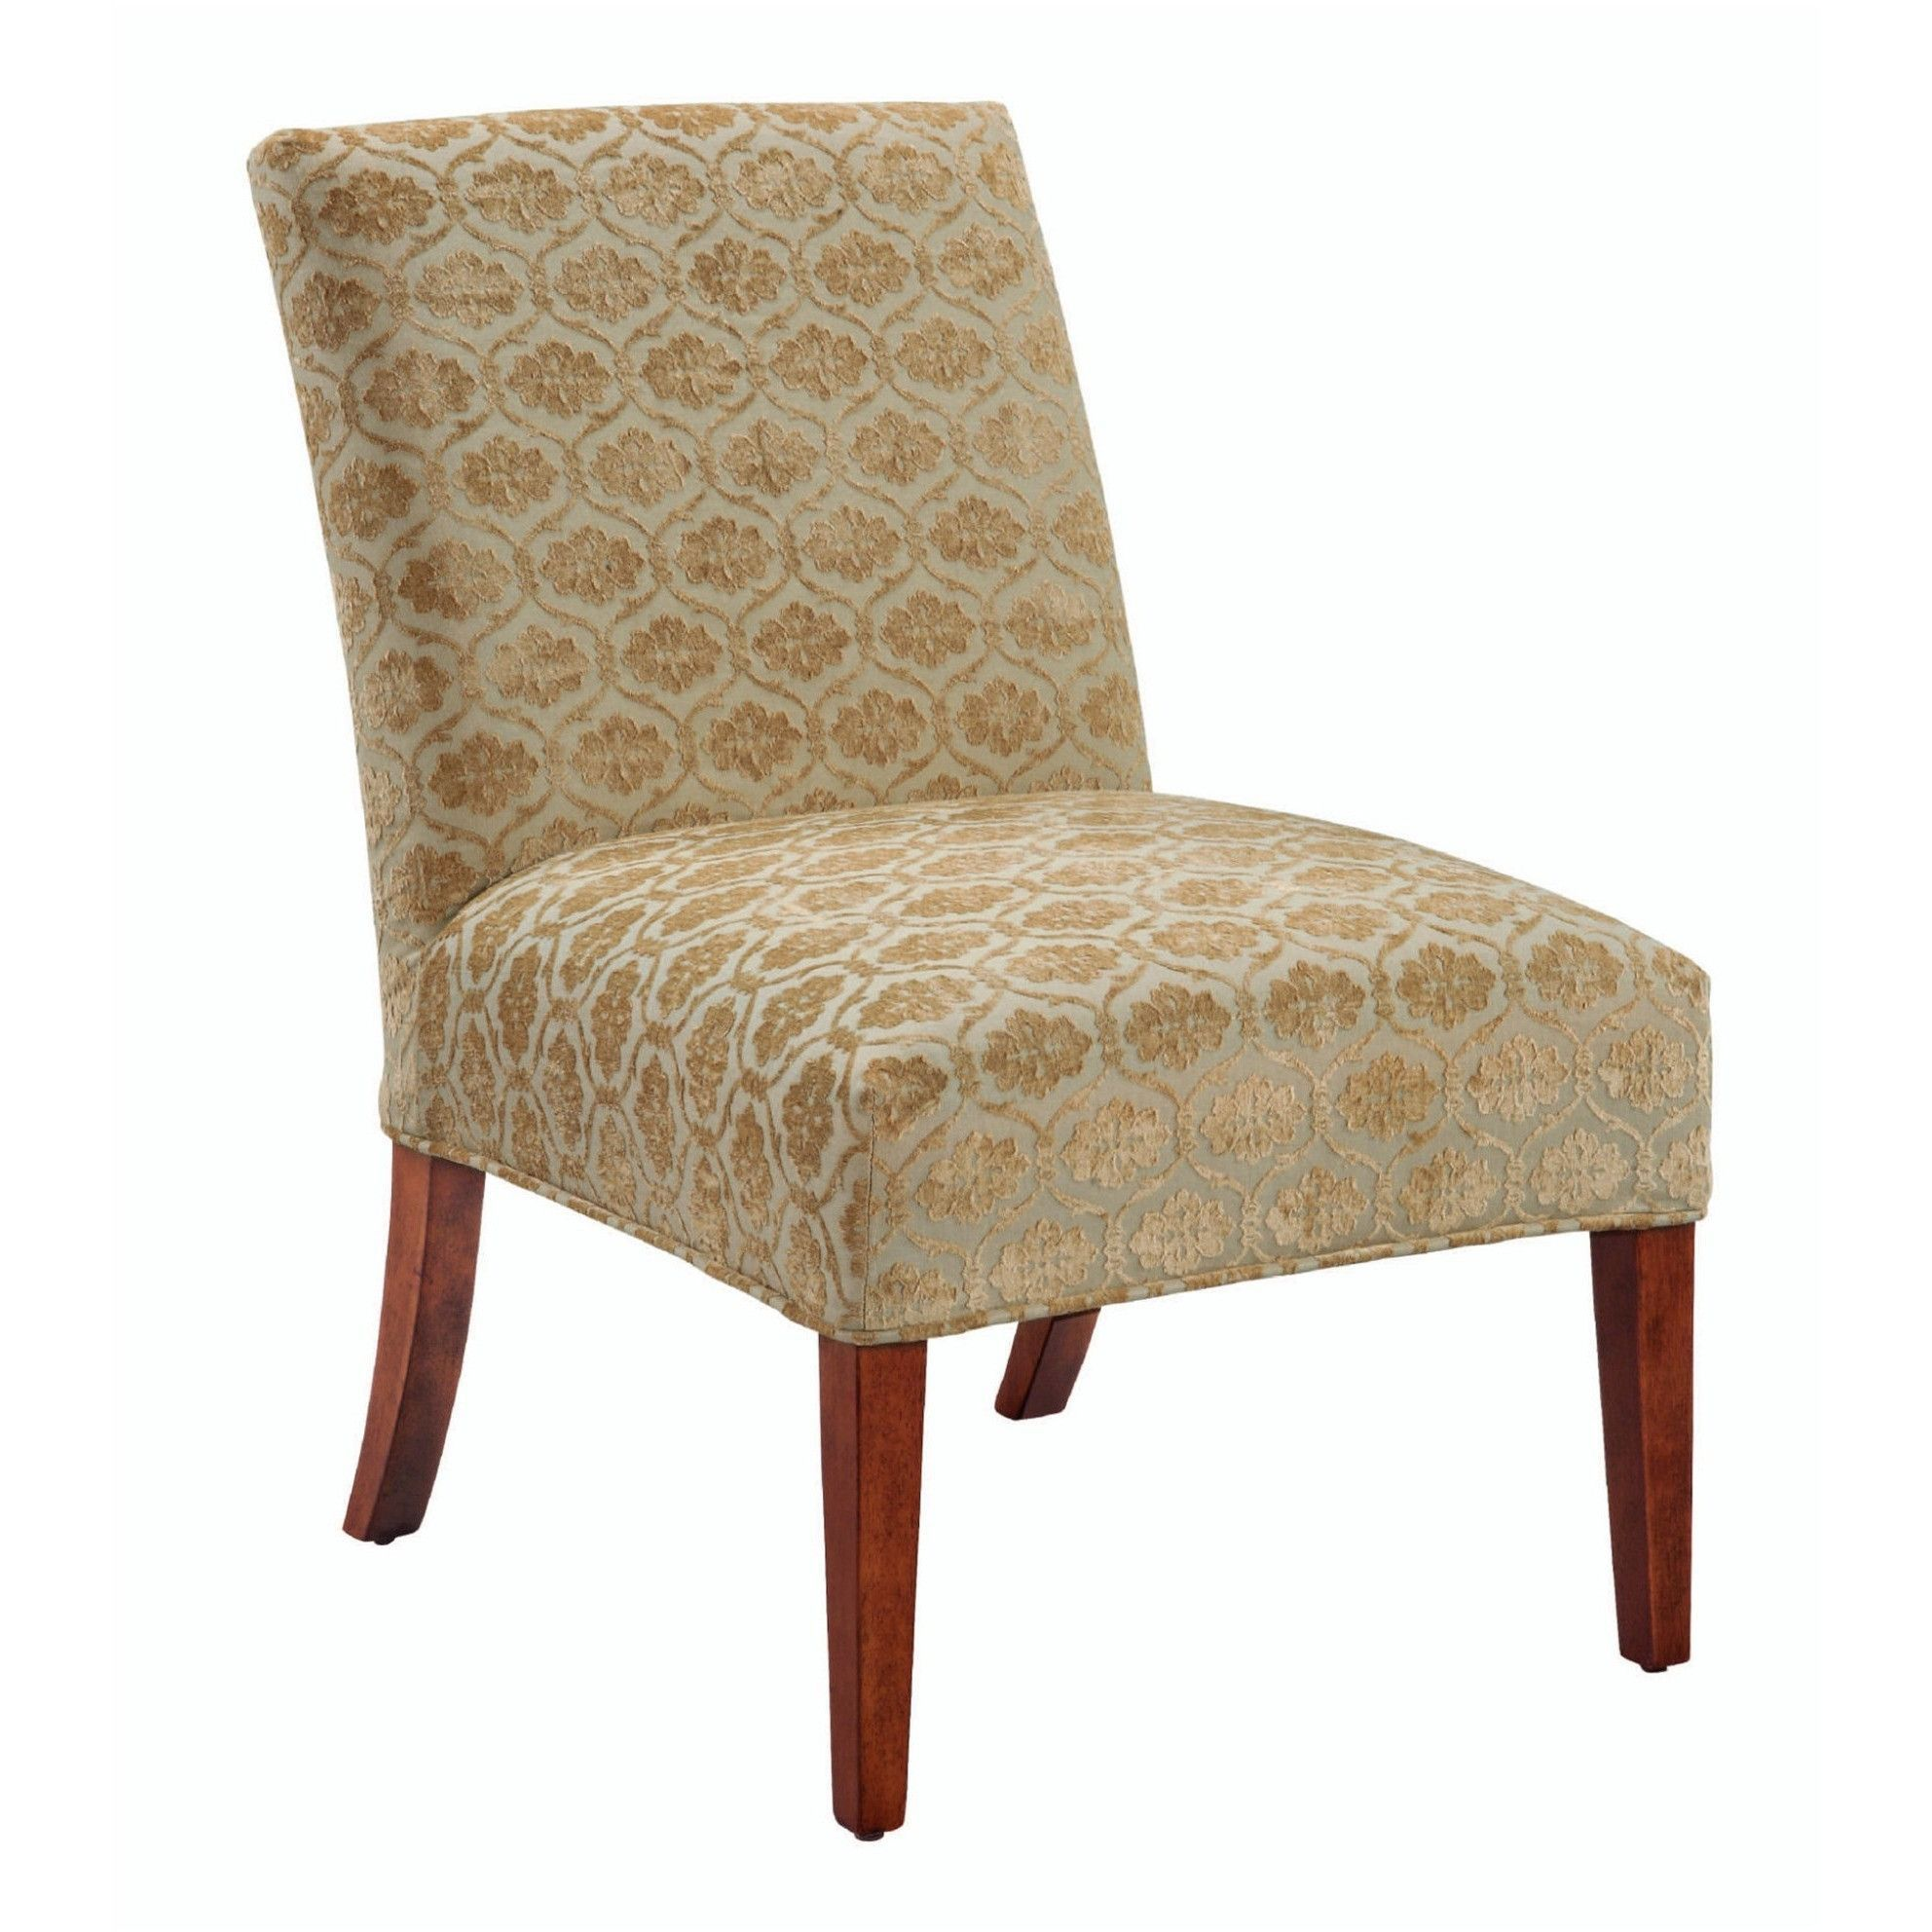 Lovecup Damask Slipper Chair cover SALE ITEM | Slipcovers ...